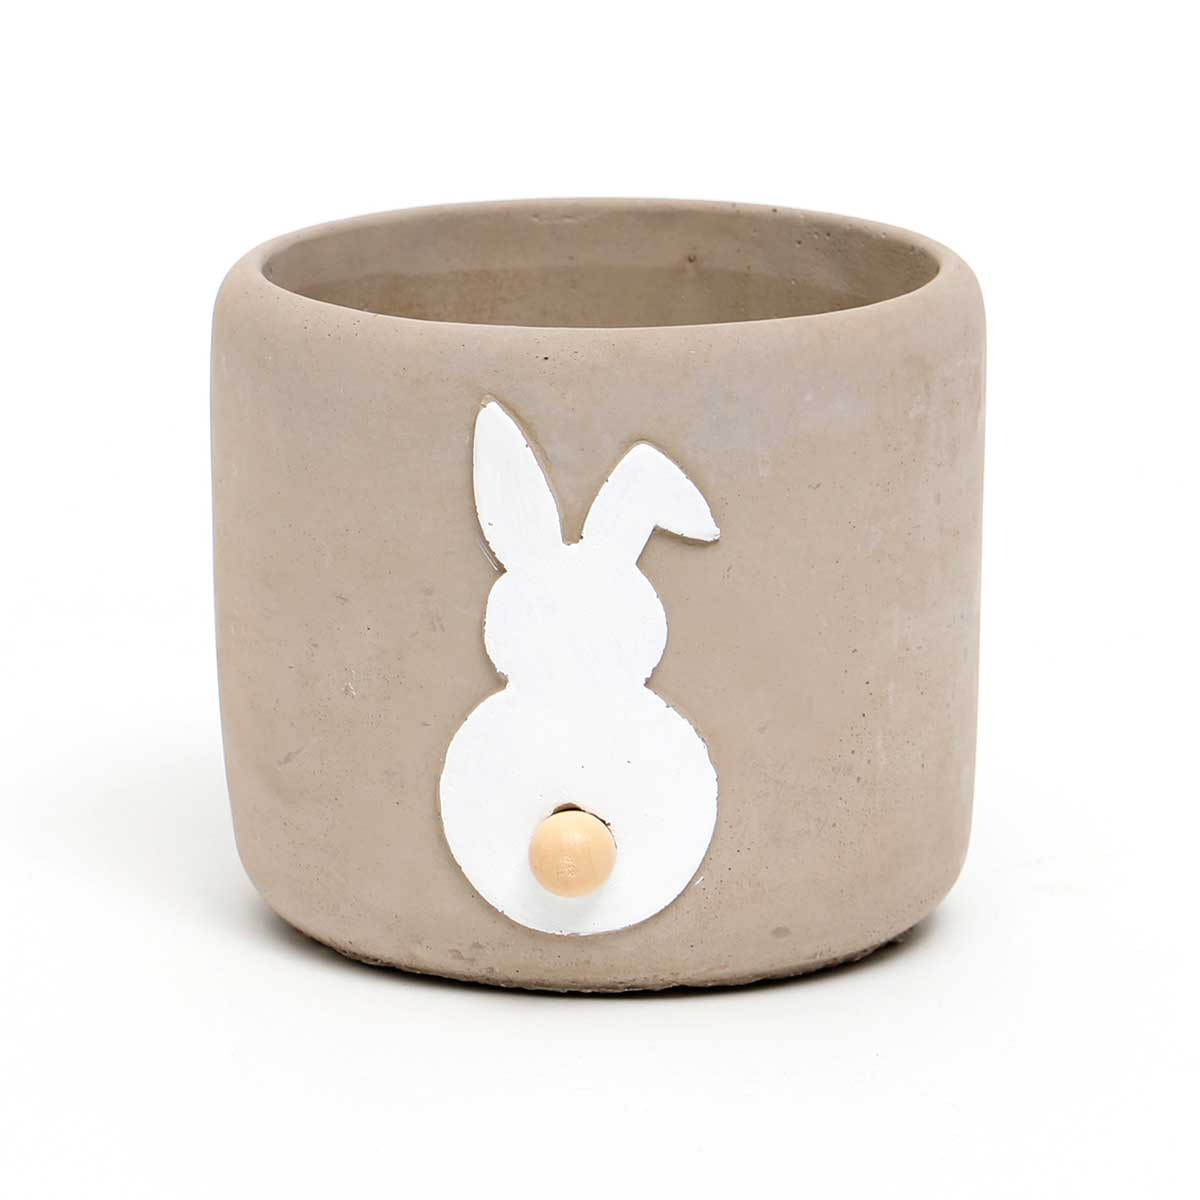 CONCRETE BUNNY POT WITH WOOD TAIL